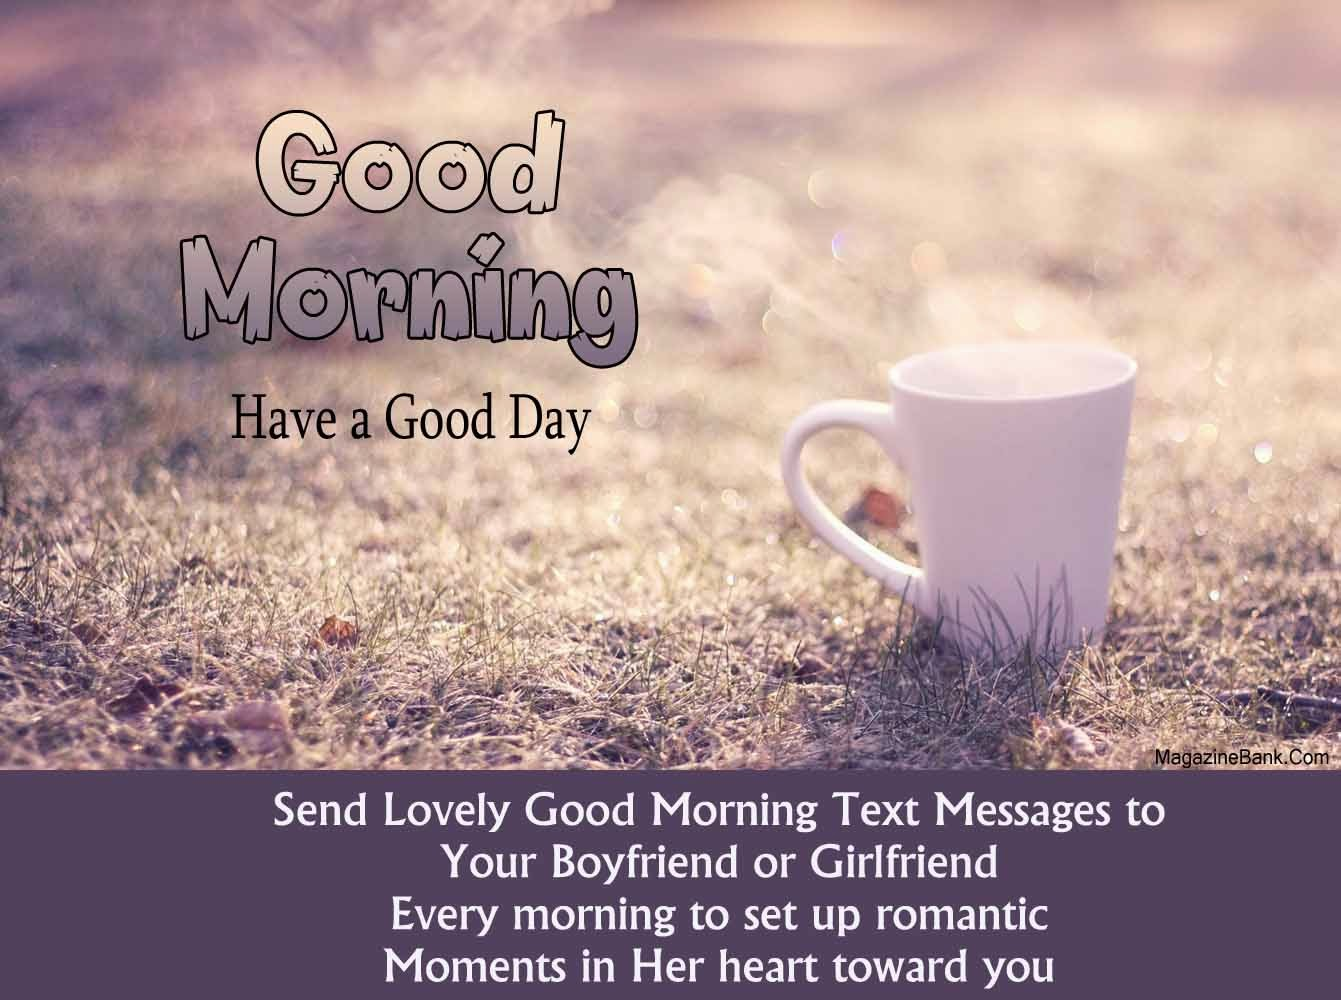 Good Morning Quotes To Your Boyfriend : Good morning text to your boyfriend search quotes auto